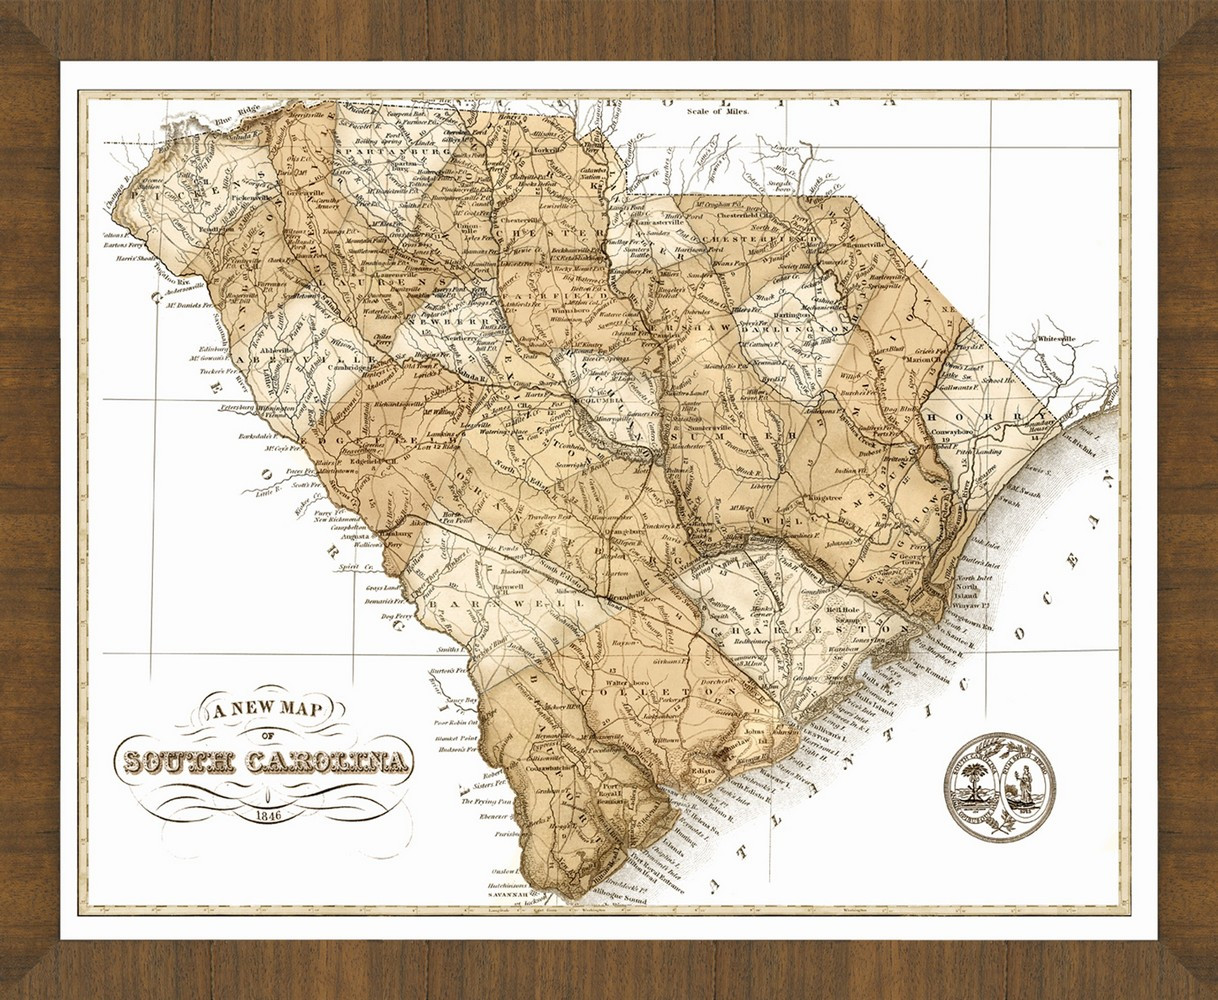 Old Map of South Carolina A Great Framed Map Thats Ready to Hang